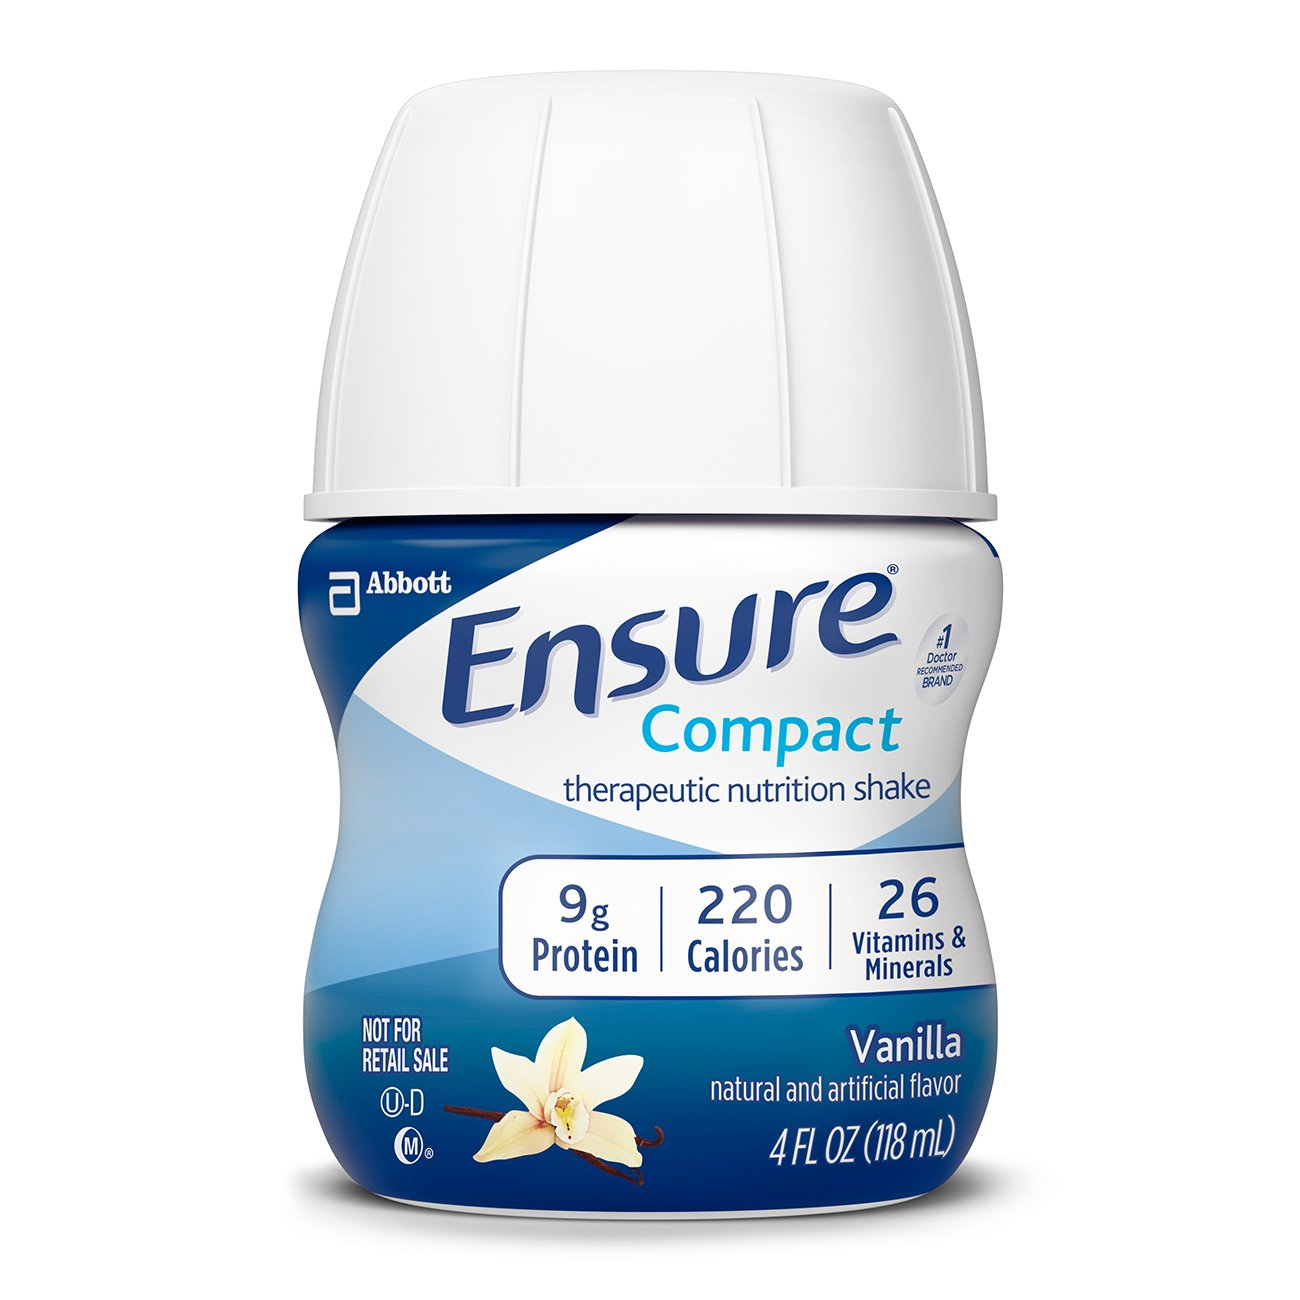 Ensure Compact Nutrition Shake, 9g of protein, Vanilla, 4 fl oz, 24 Count